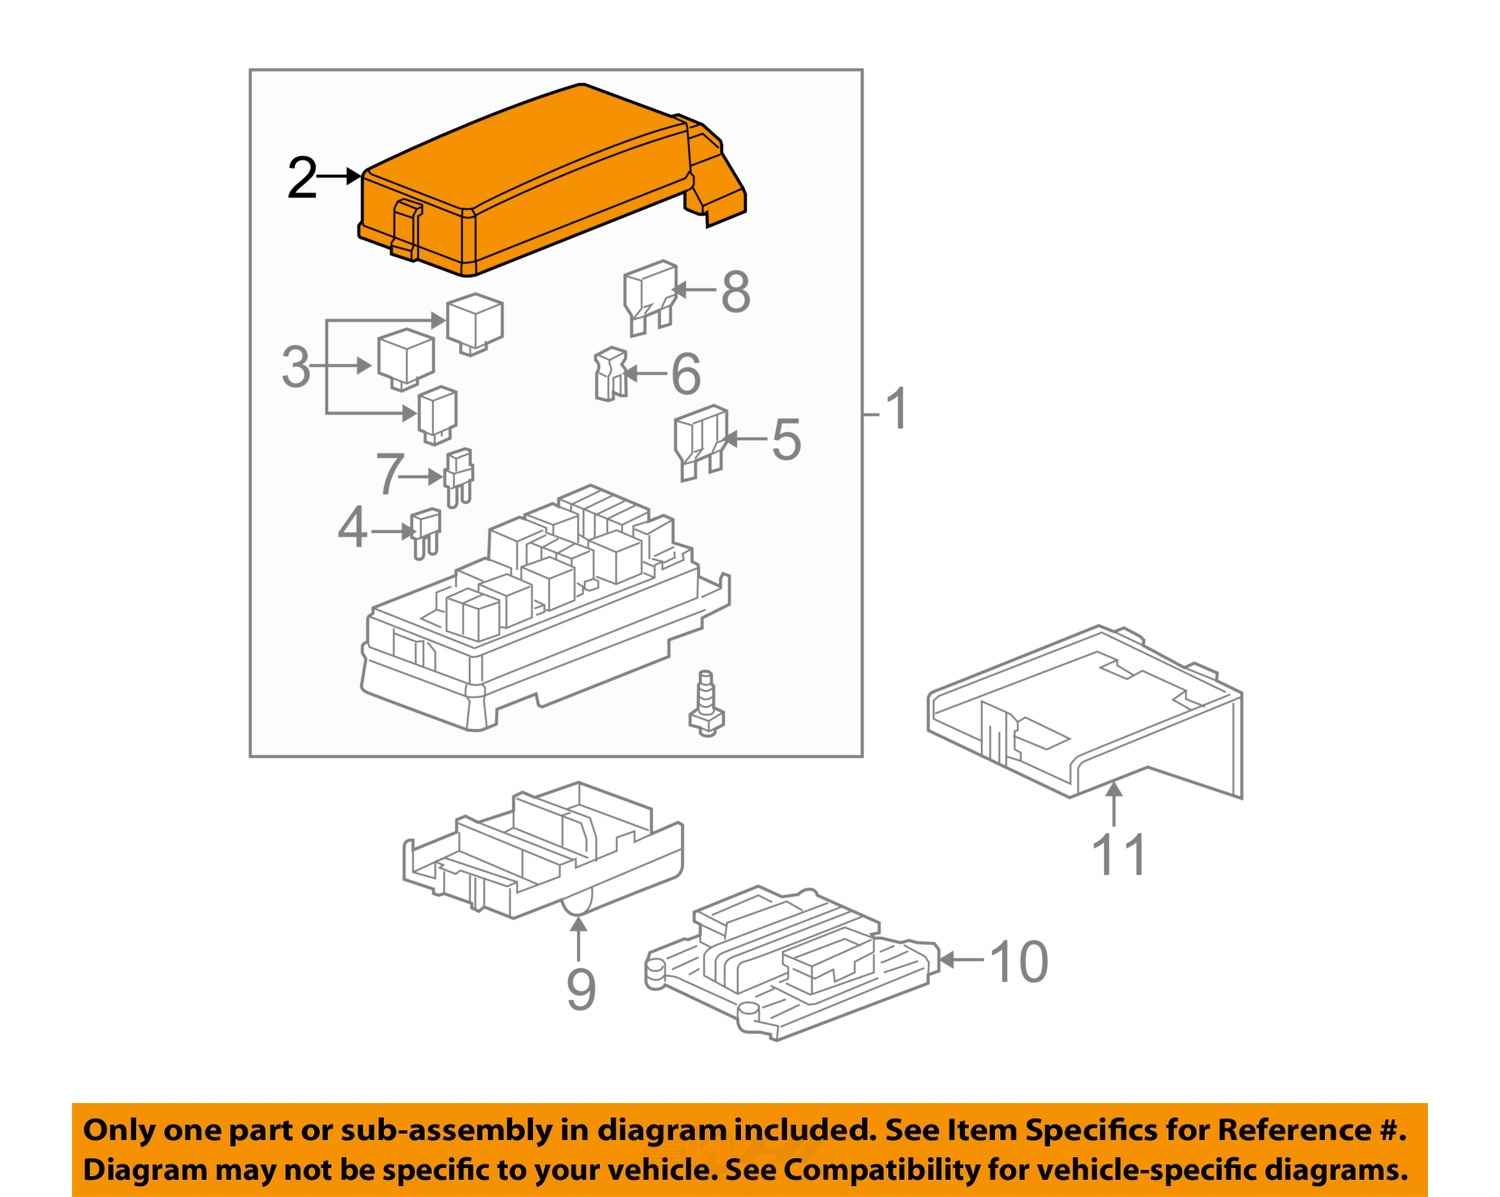 hight resolution of 2008 chevy equinox fuse box for sale block and schematic diagrams u2022 2005 tahoe fuse